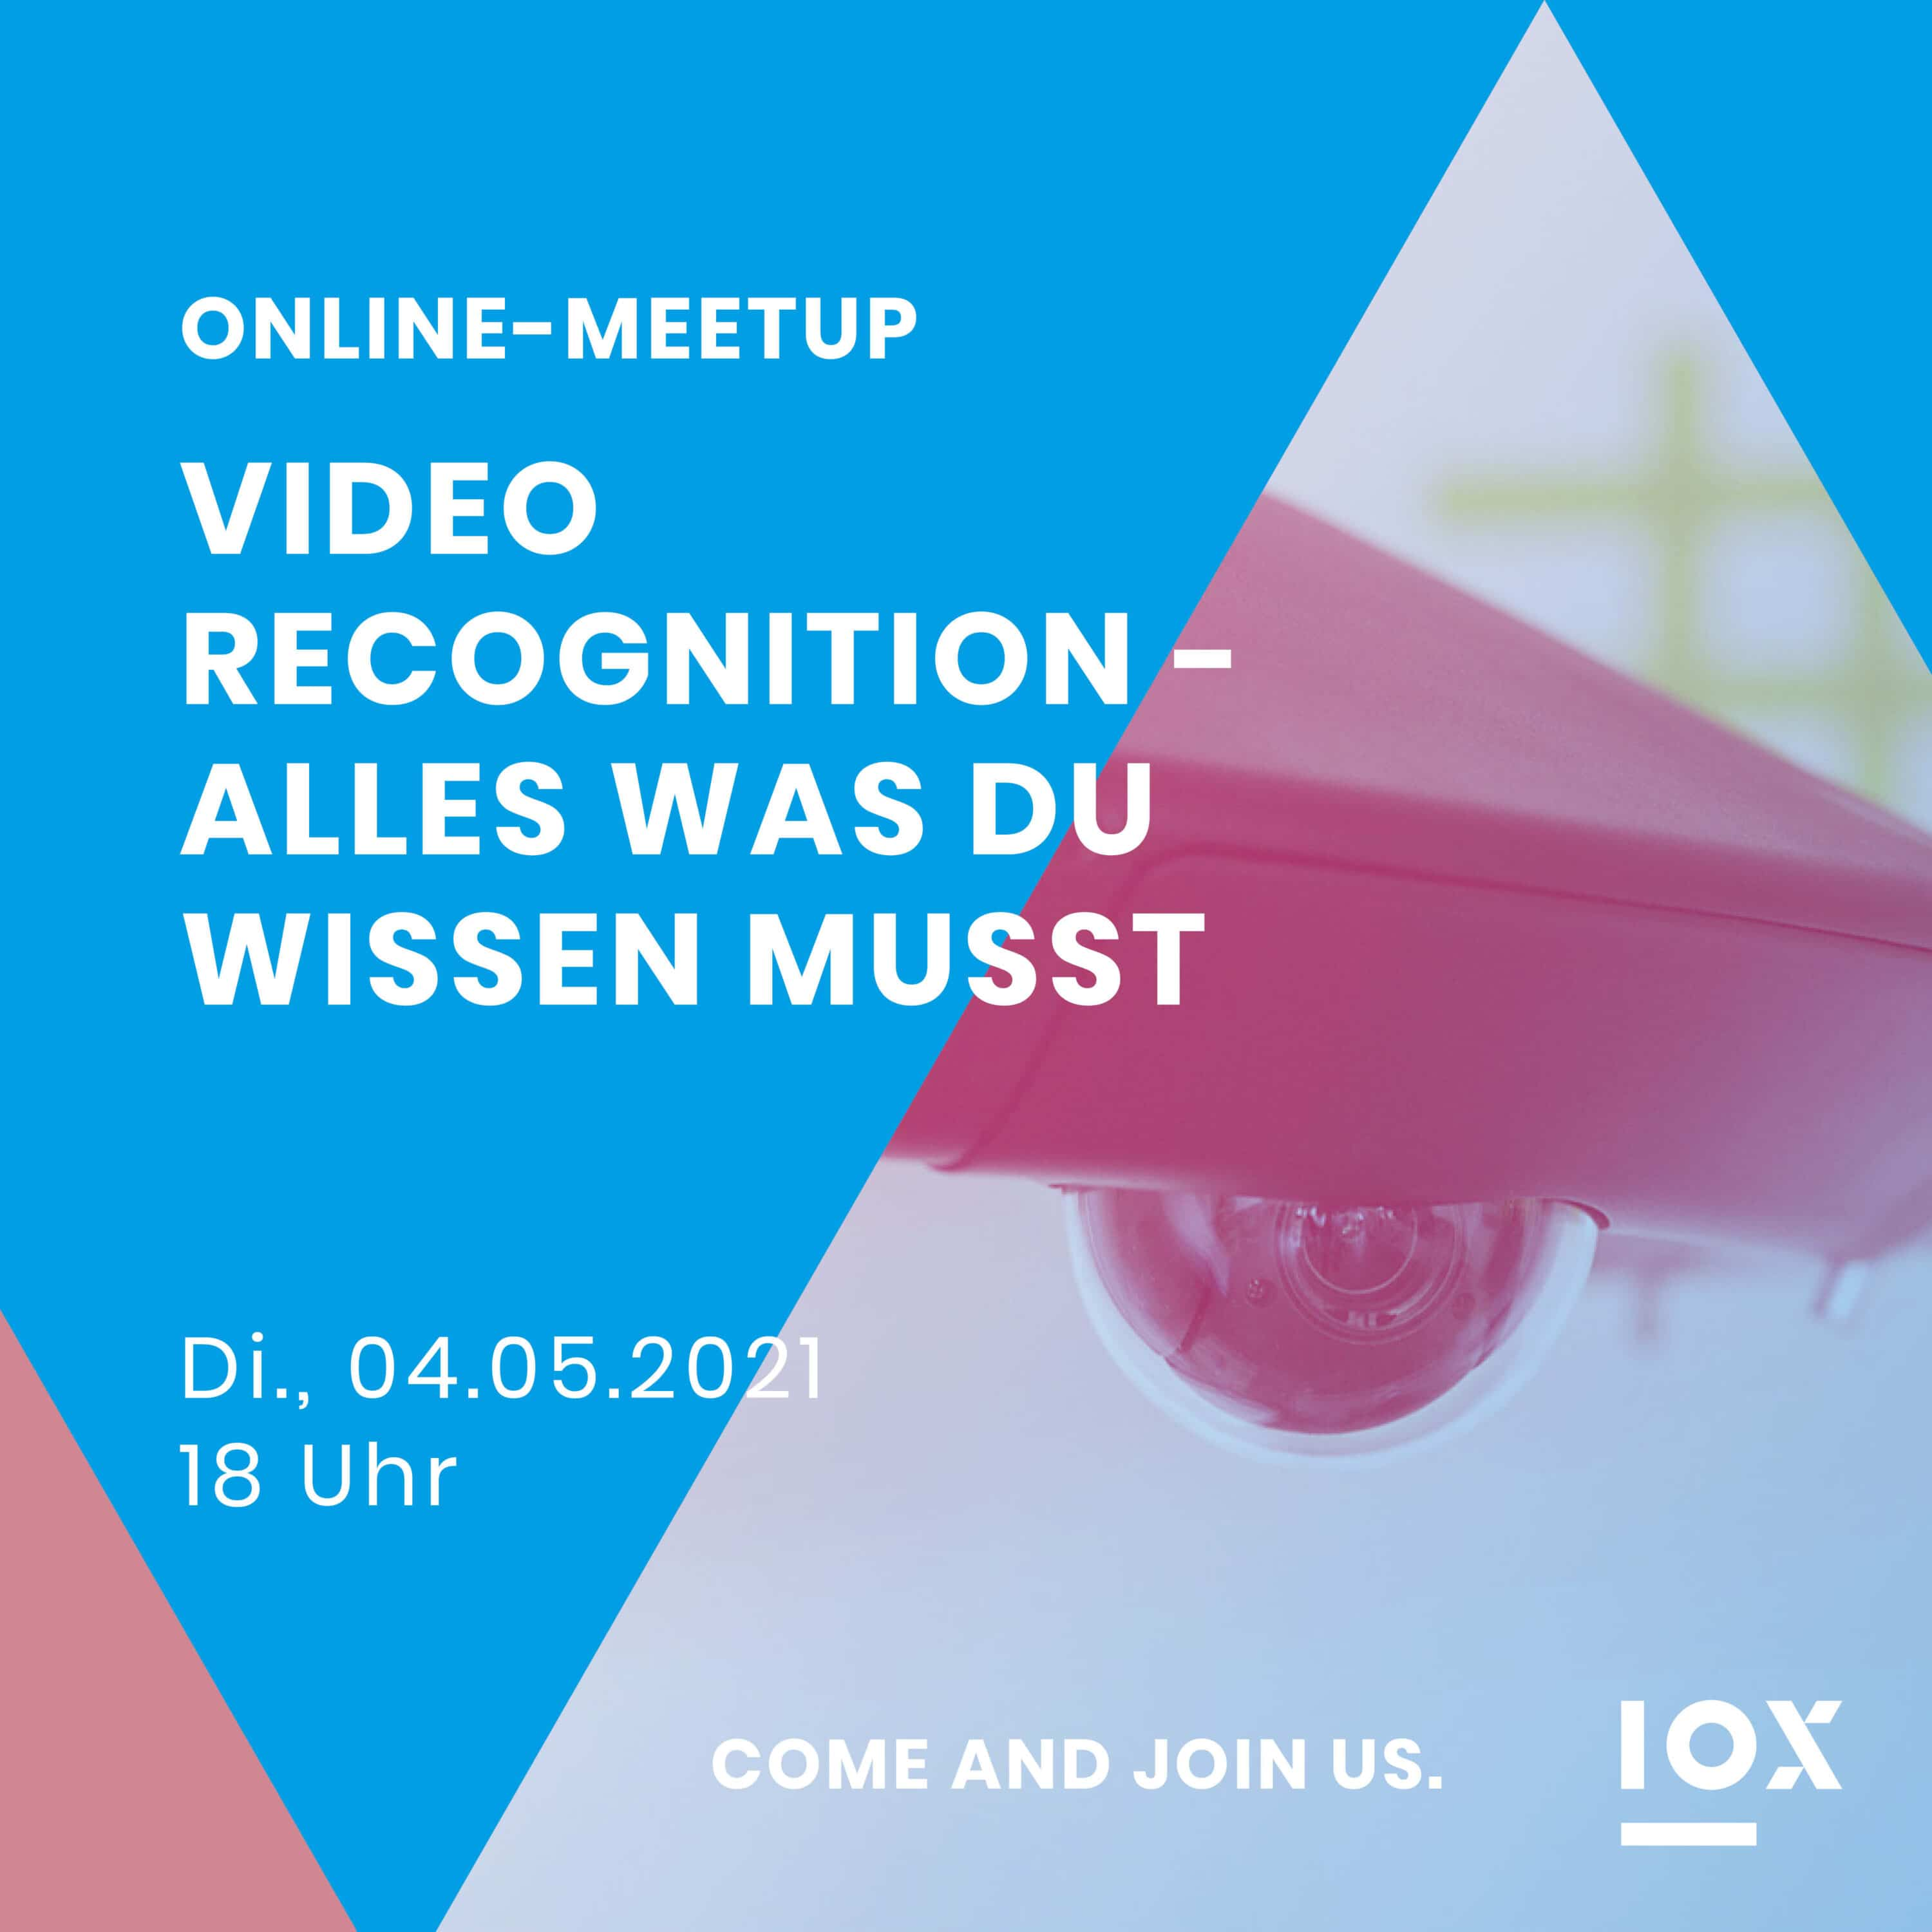 2021-04-30 IOX Event Meetup Video Recognition Insta 1